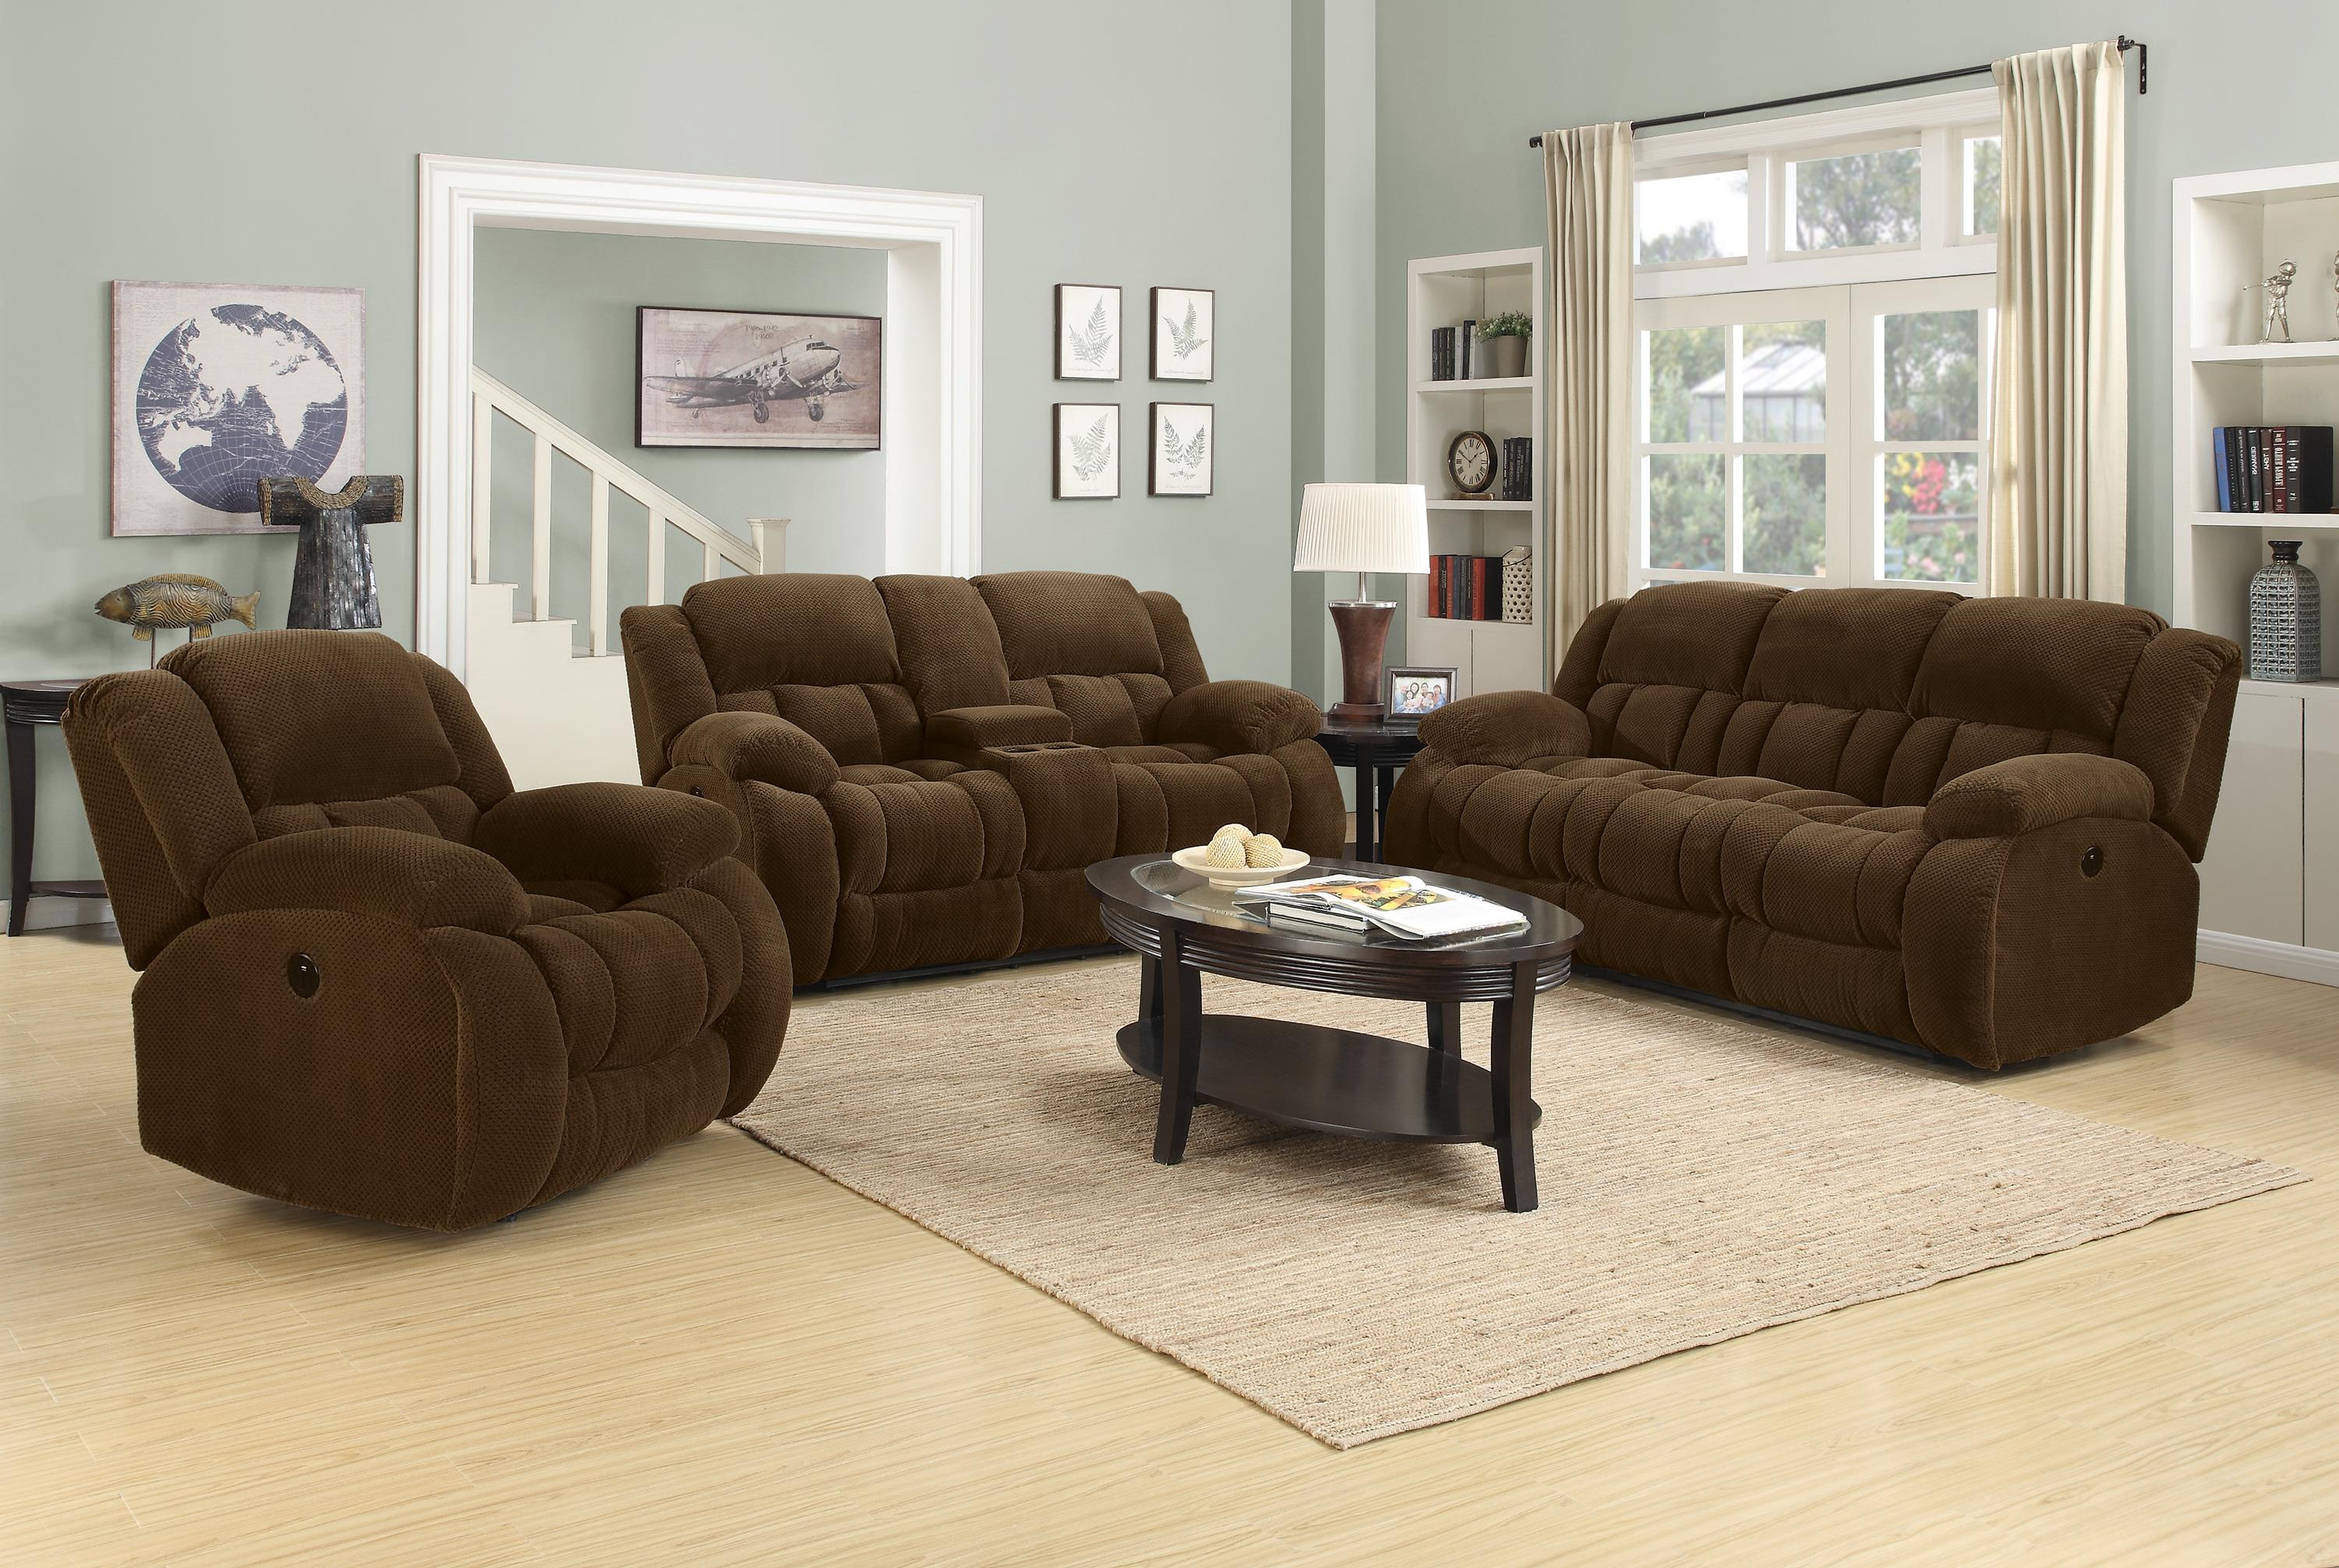 Surprising Weissman Casual Pillow Padded Power Reclining Loveseat With Cupholders And Storage Gmtry Best Dining Table And Chair Ideas Images Gmtryco